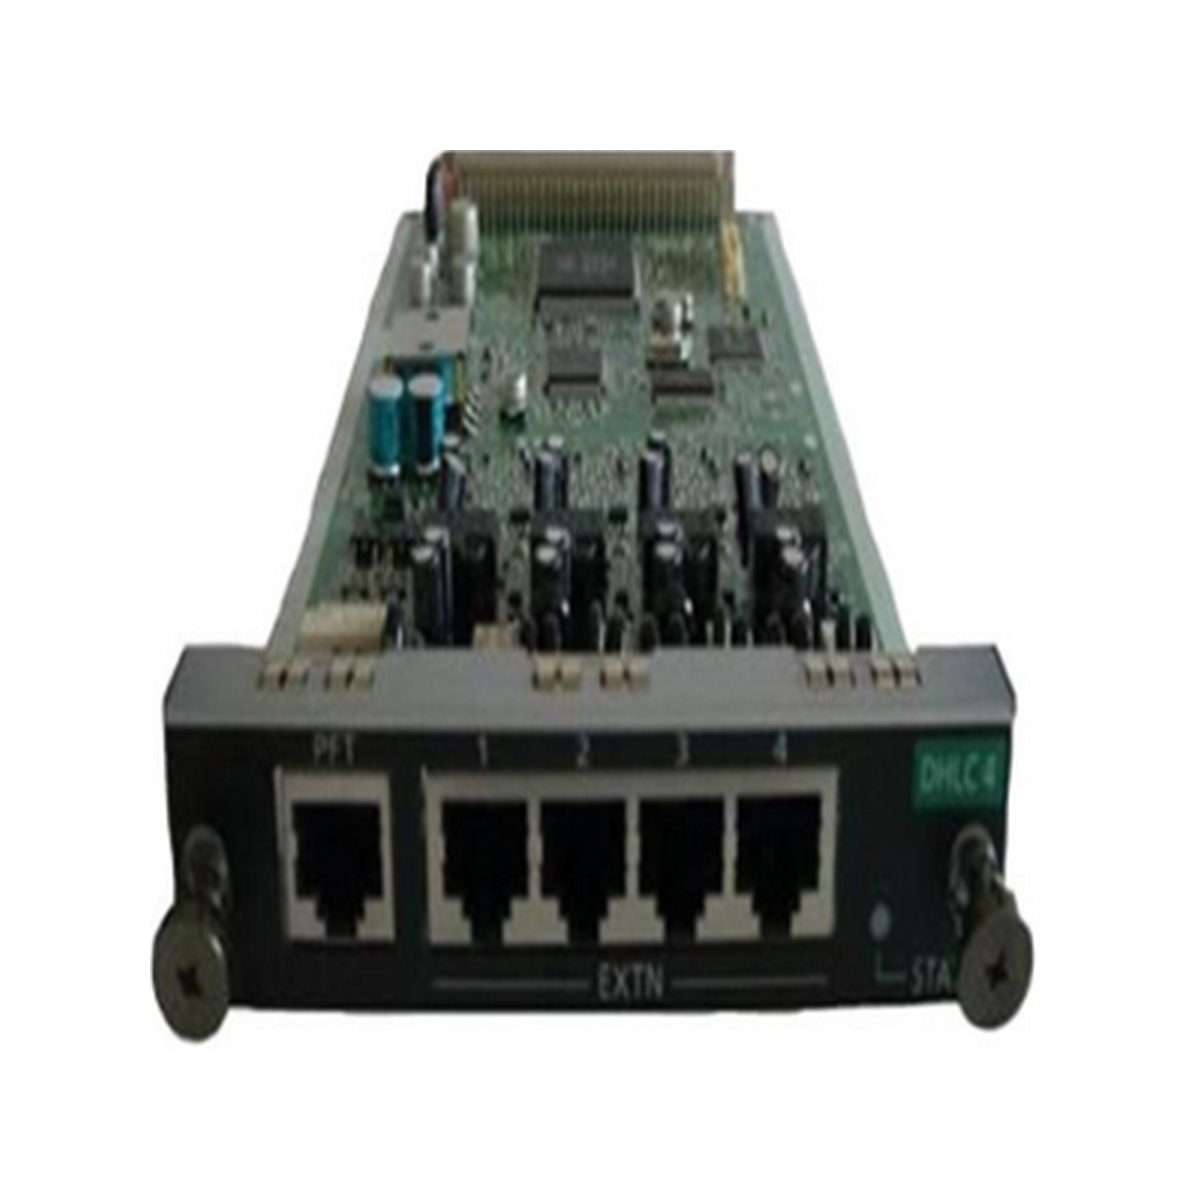 PAN-KXNCP1171 8-Digital Ext Card